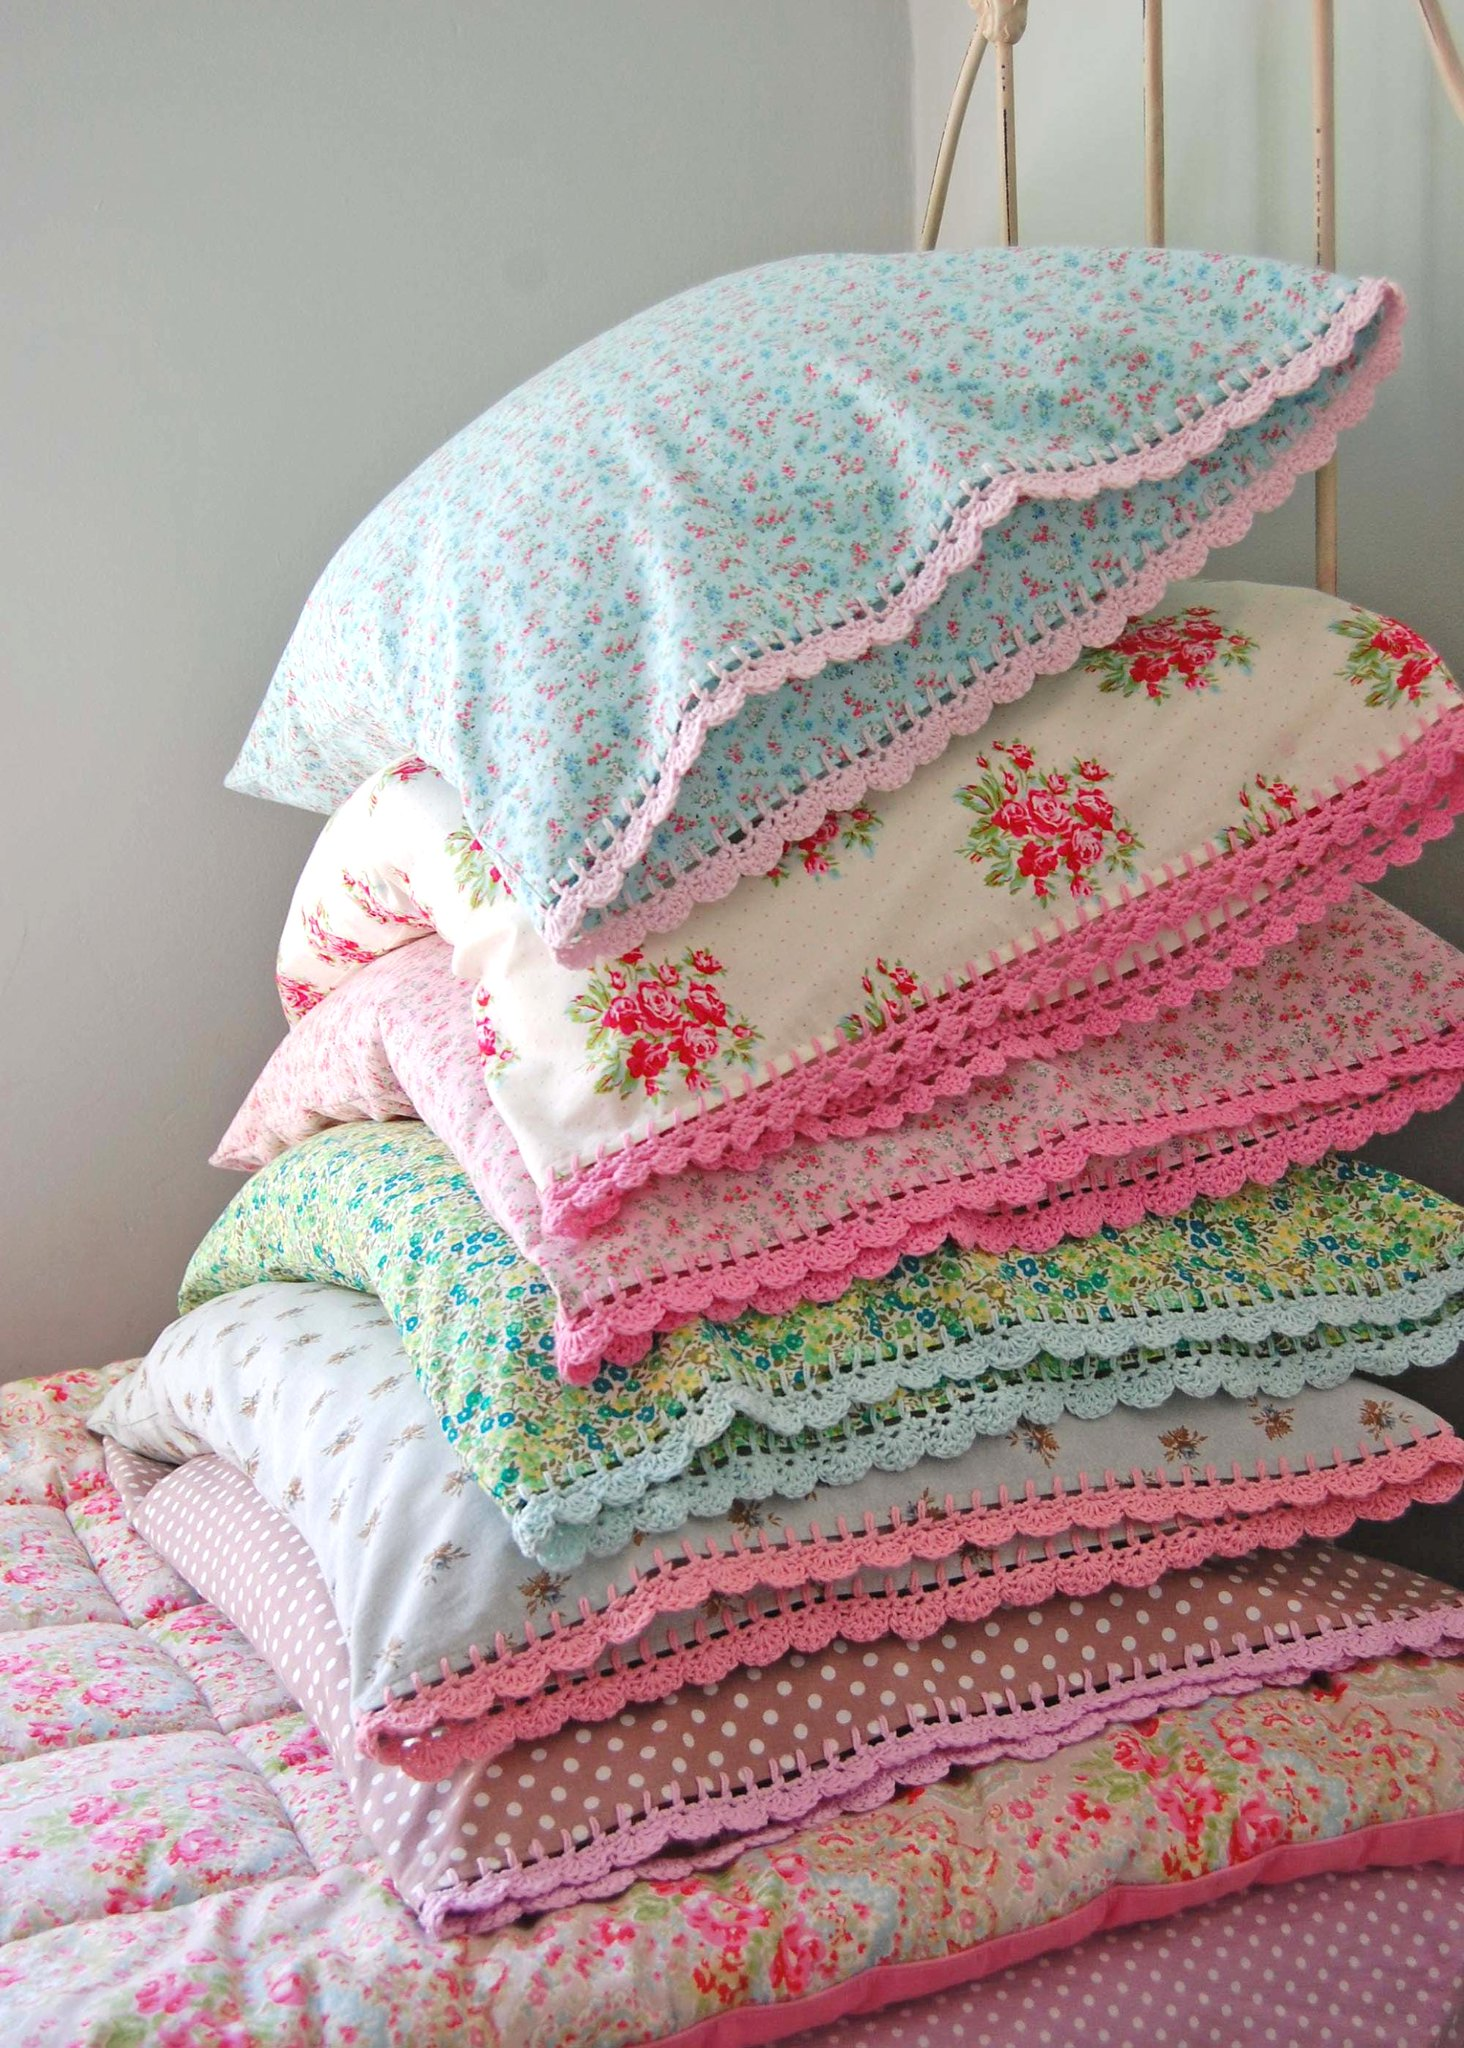 pile of colorful bedding